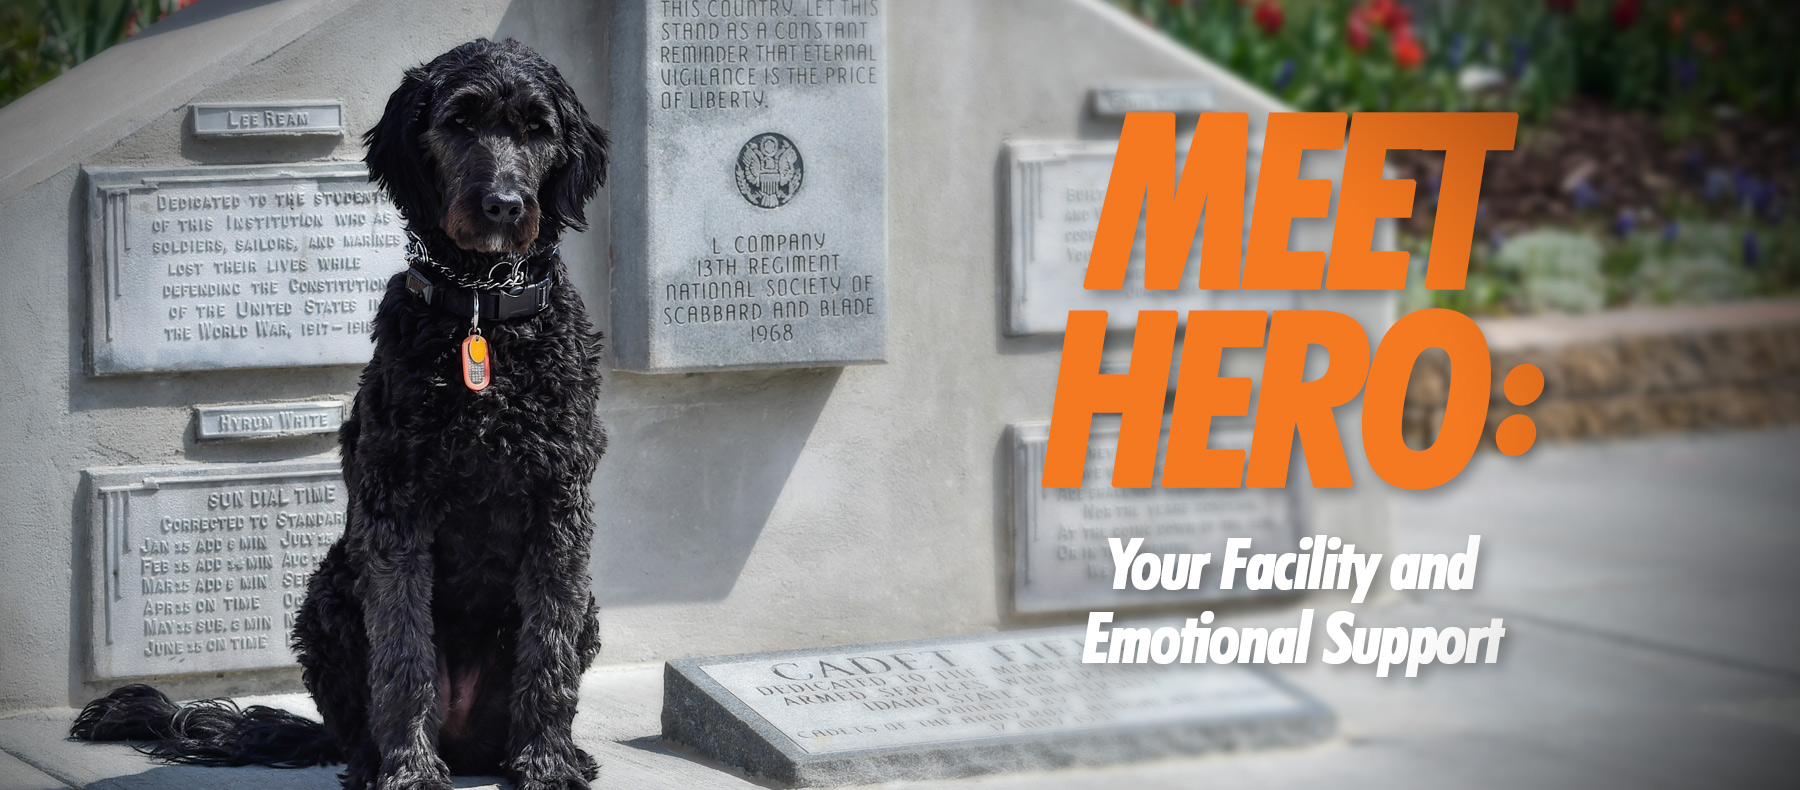 Meet Hero: your facility and emotional support